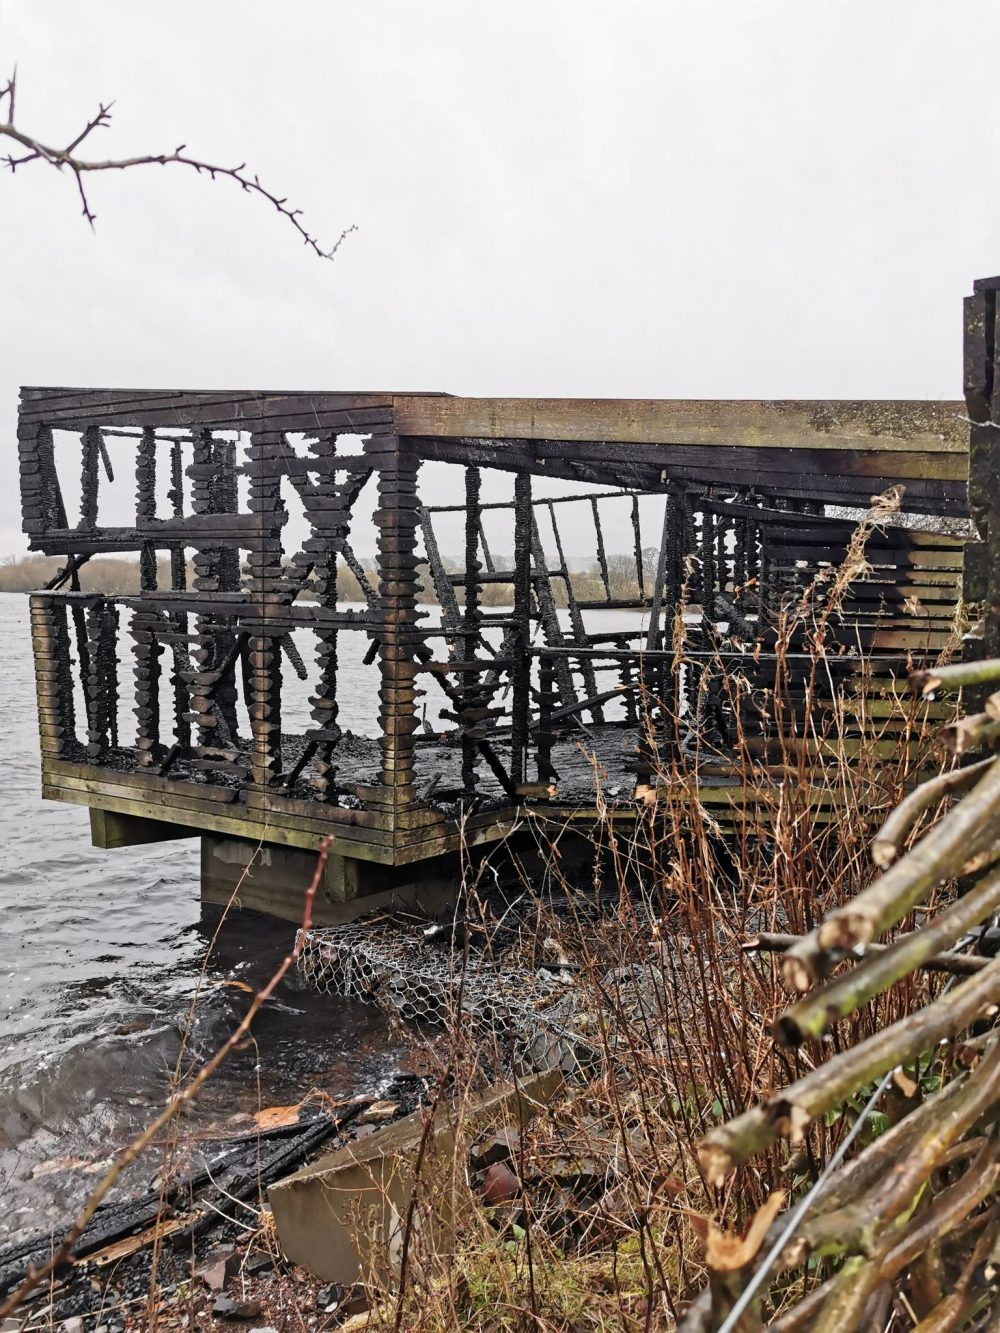 The hide after the fire NatureScot - Court and Crime News Scotland